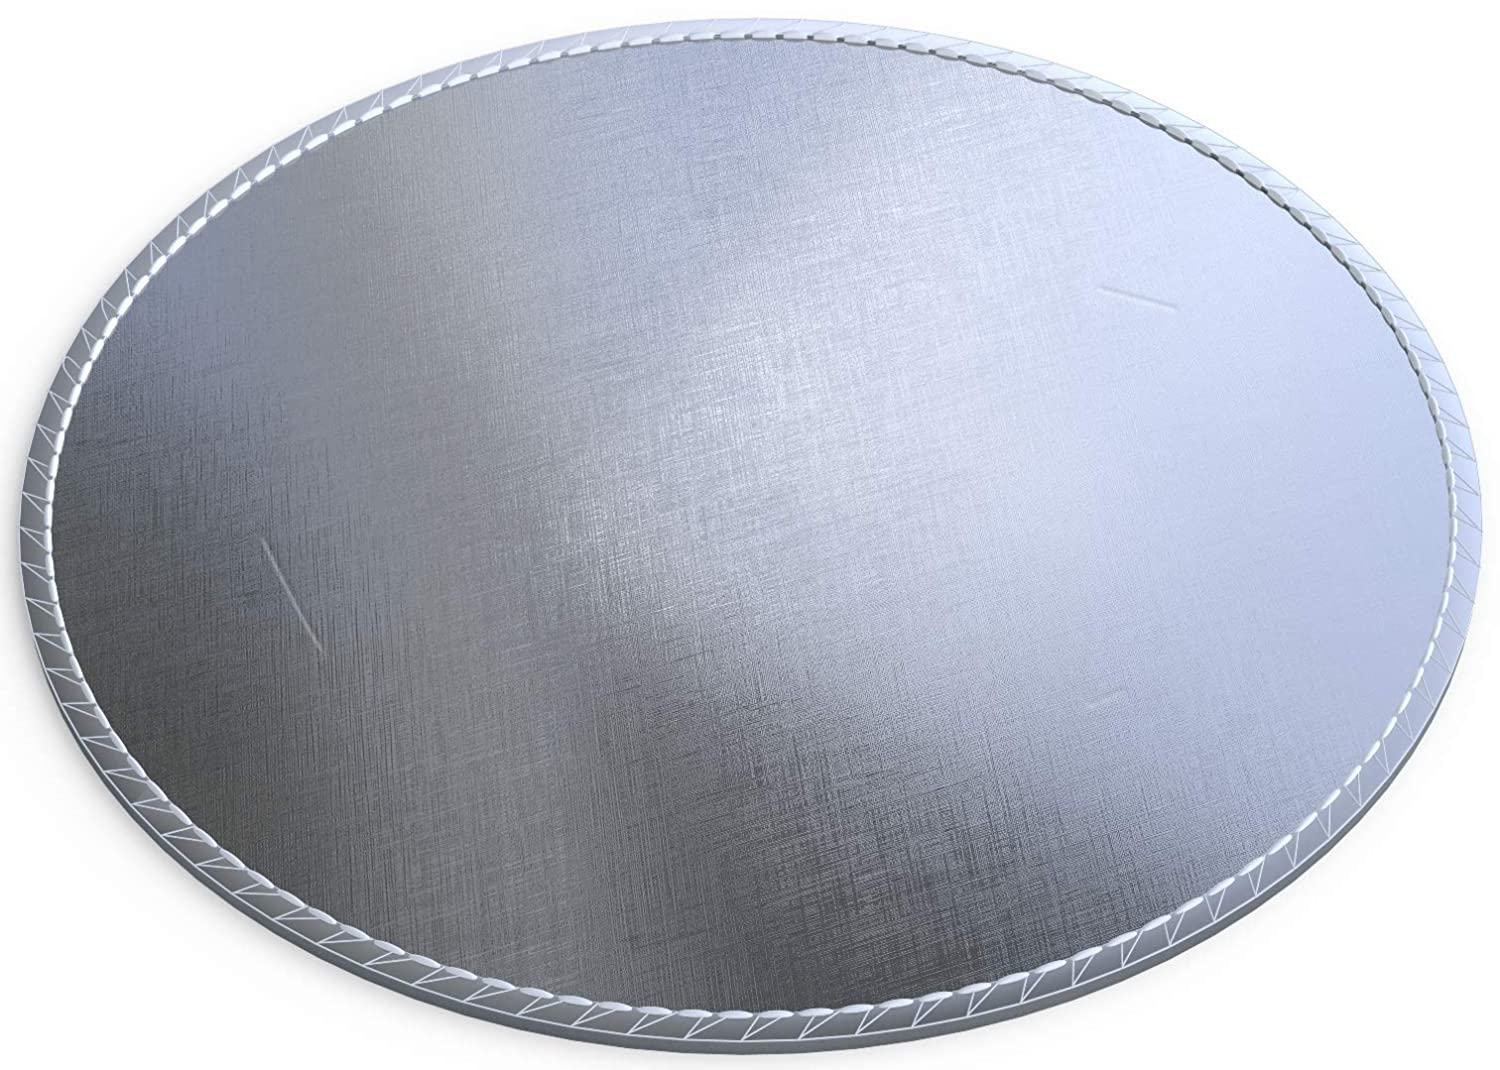 KoolPad Fire Pit Pad & Grill Mat - 24 INCH - Protect Your Deck, Patio or  Lawn from Expensive Damage from Heat, Fire Spillover, or Grease Drips from  a ... - Amazon.com : KoolPad Fire Pit Pad & Grill Mat - 24 INCH - Protect